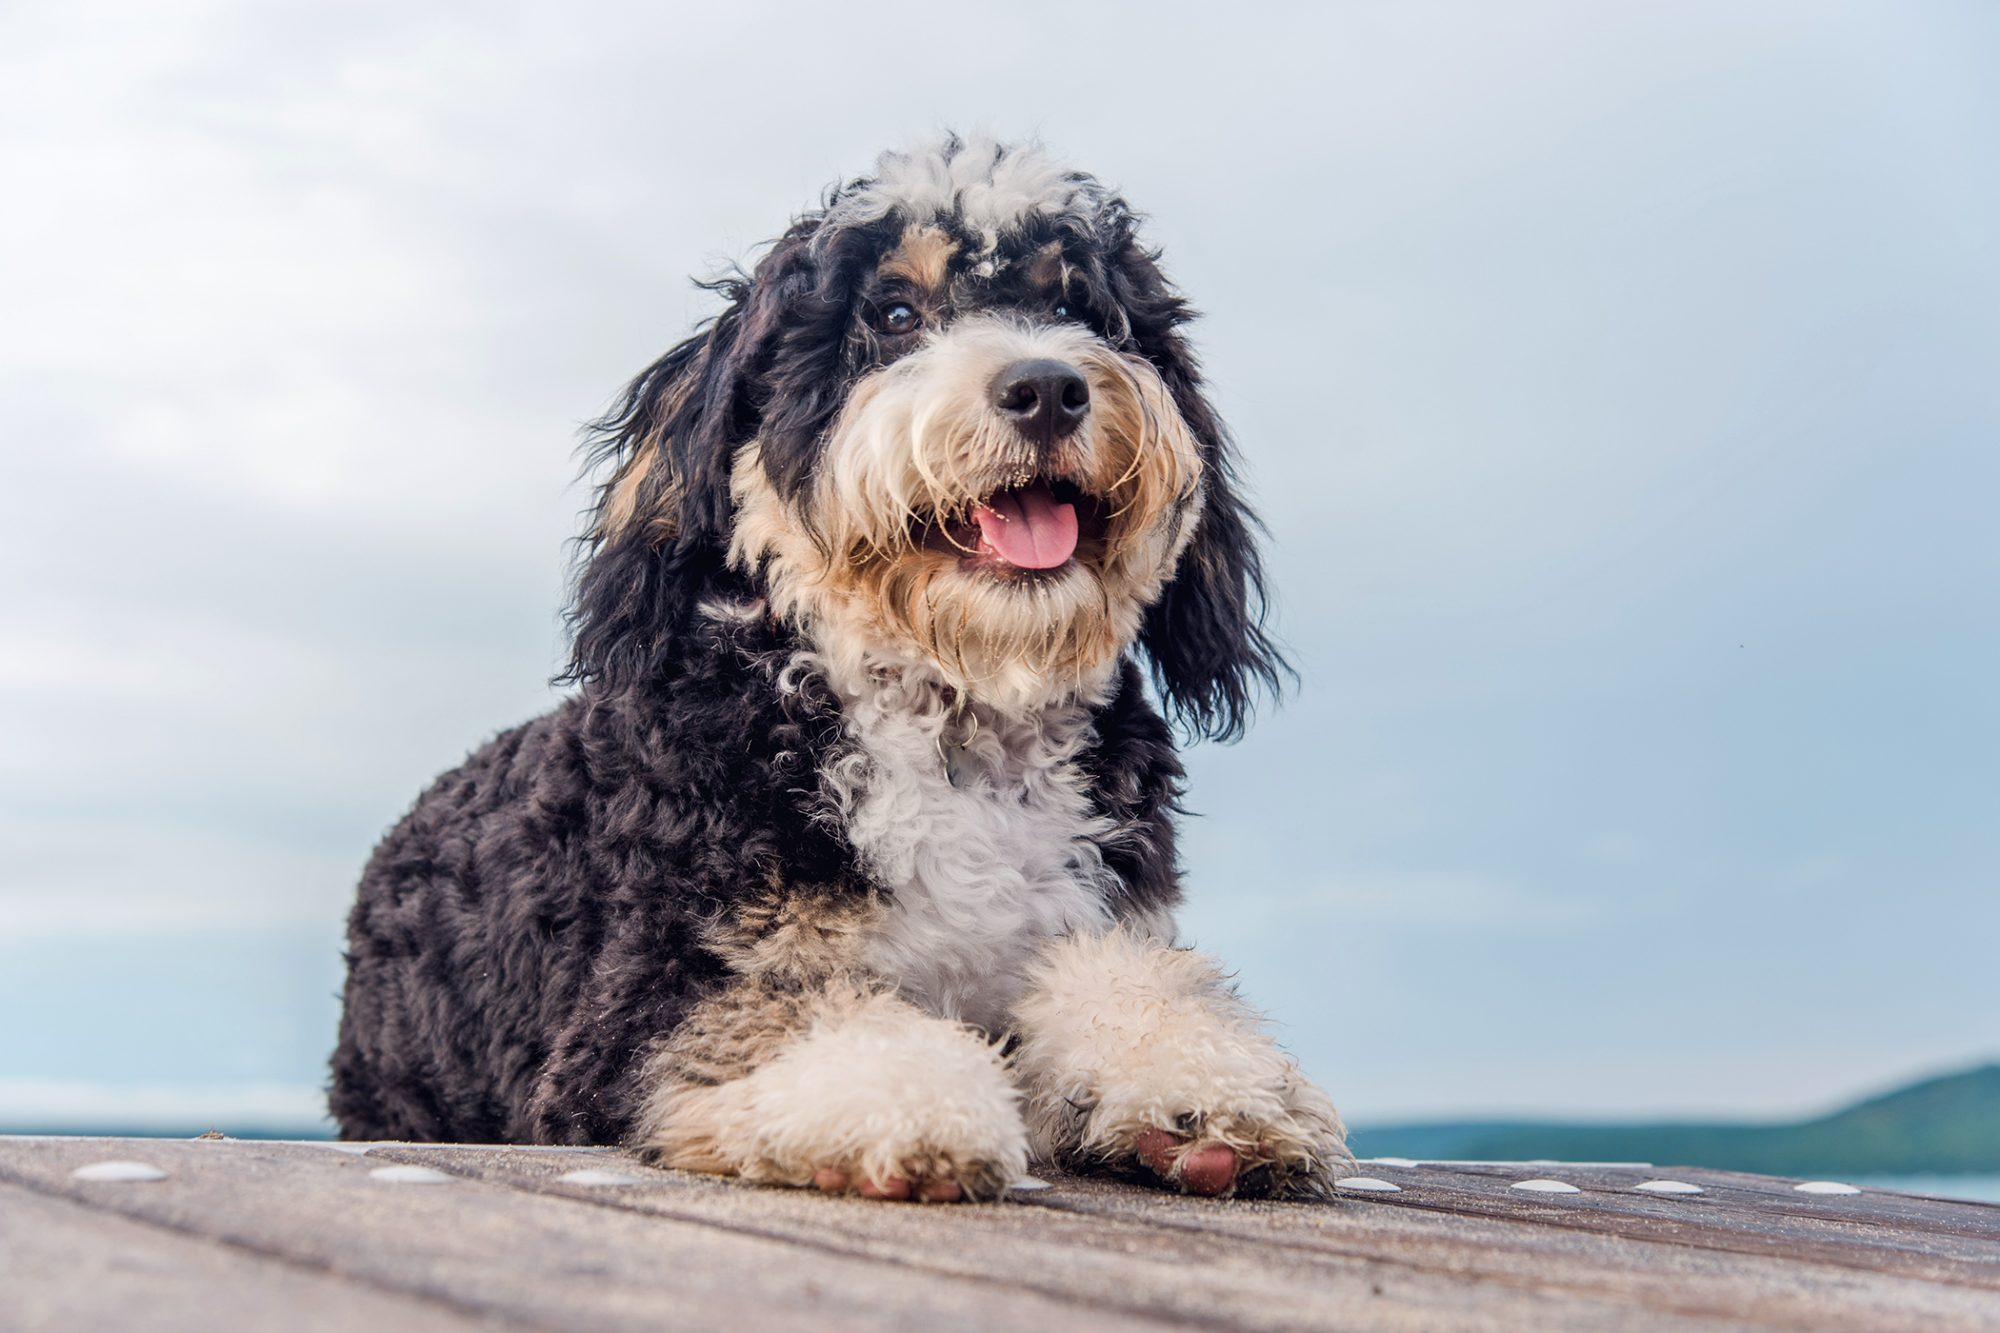 Black, tan, and white Bernedoodle on dock